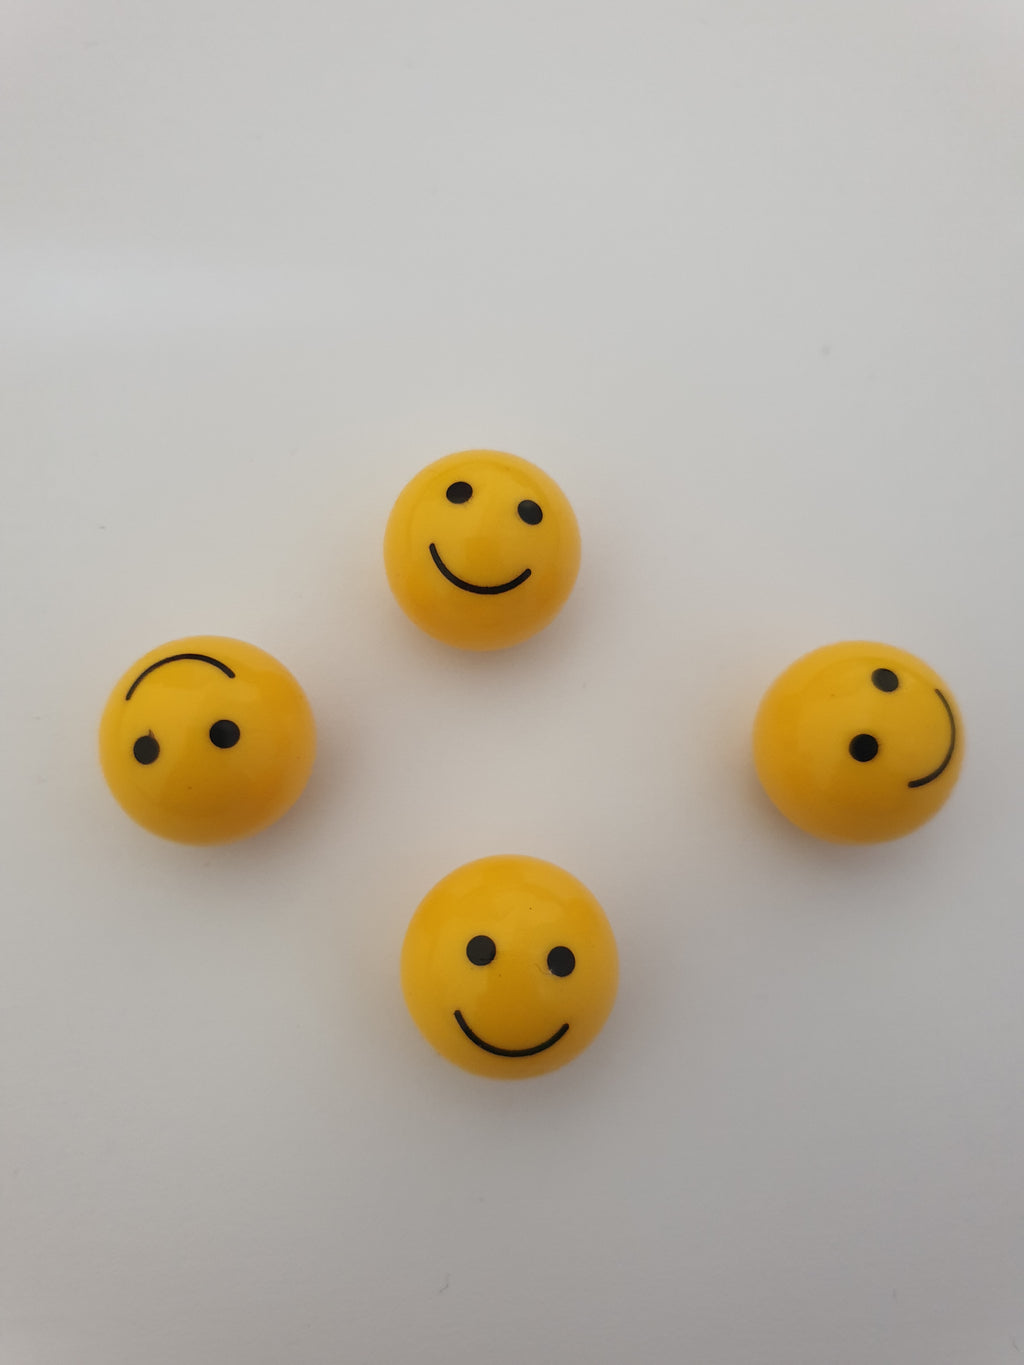 Smile Emoji Valve Stem